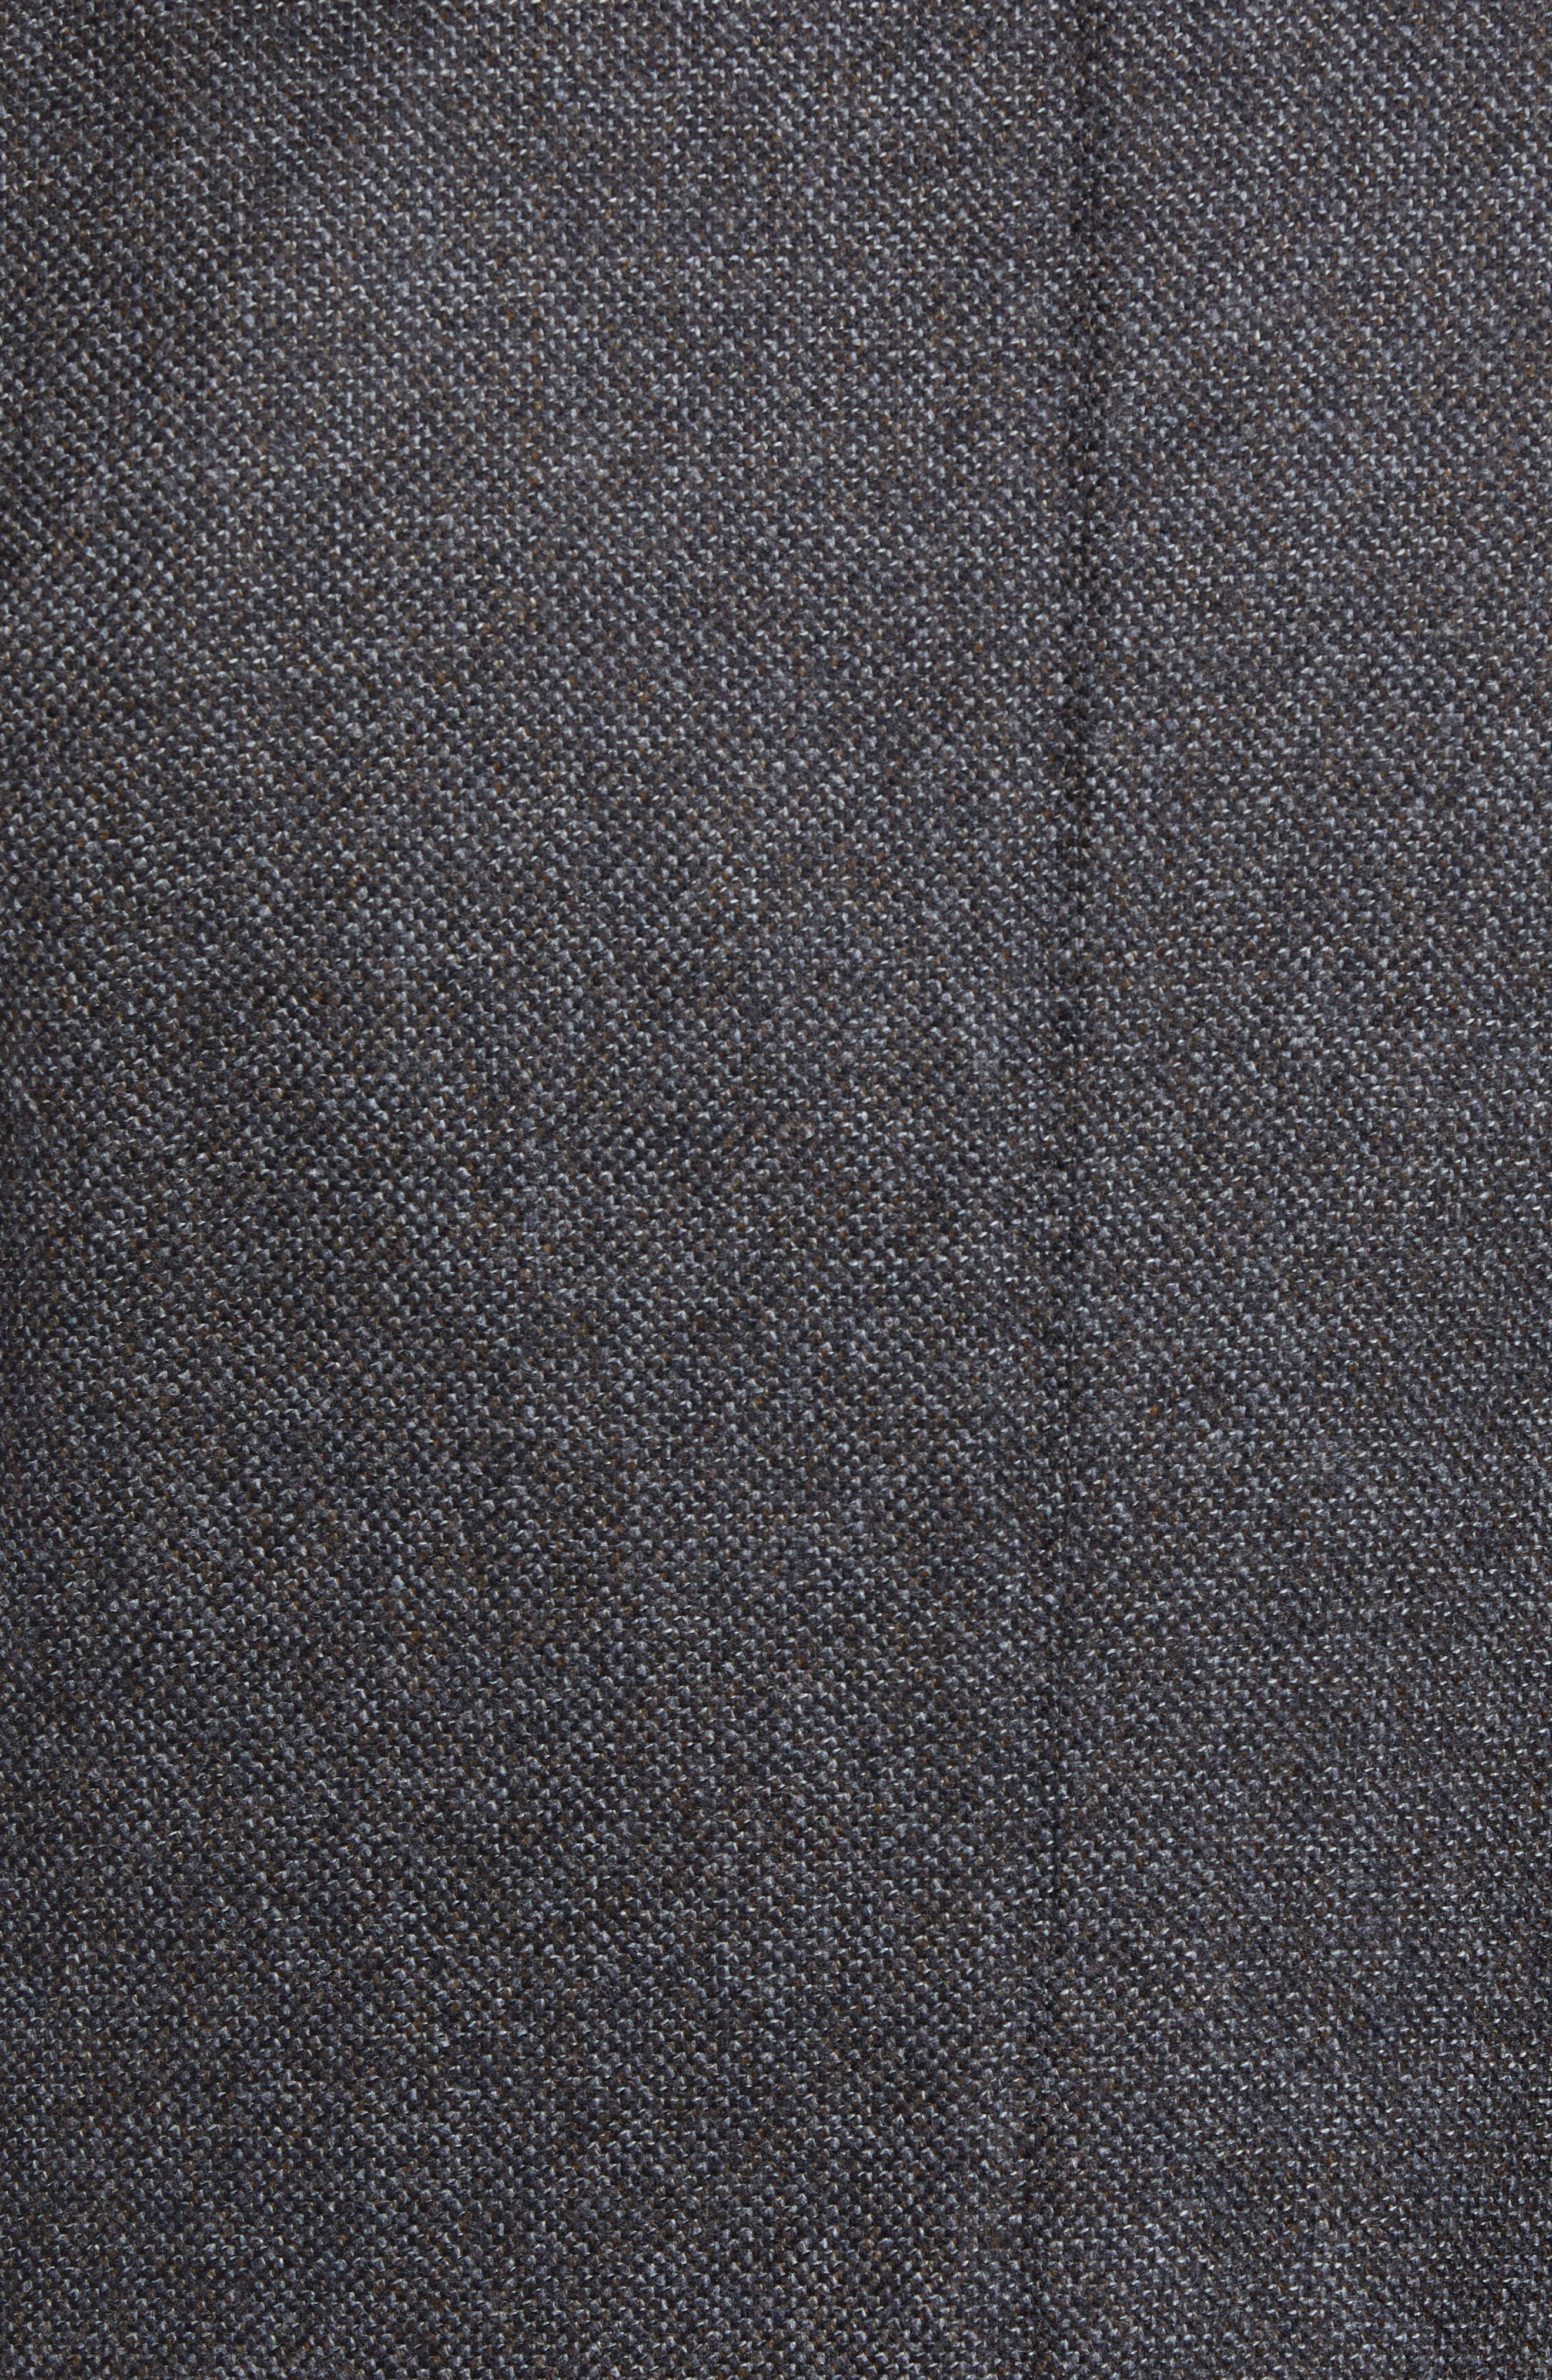 Classic Fit Stretch Tweed Wool Blend Sport Coat,                             Alternate thumbnail 6, color,                             GREY